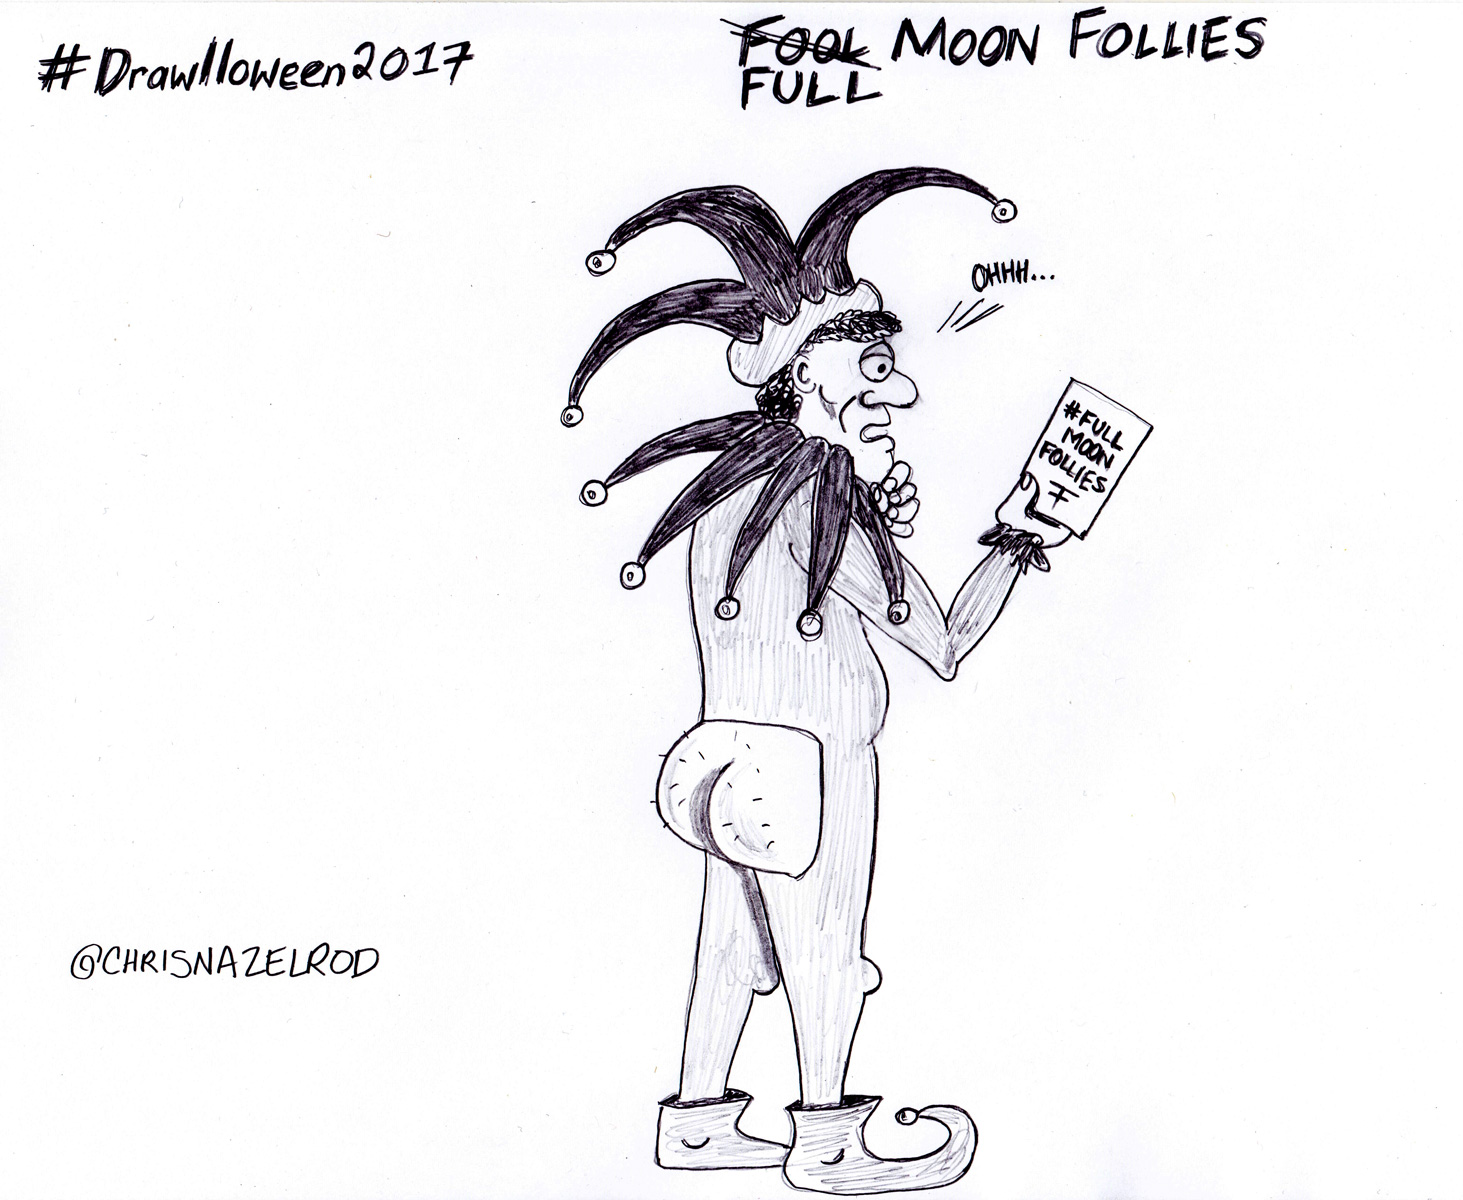 Day 5: Full Moon Follies